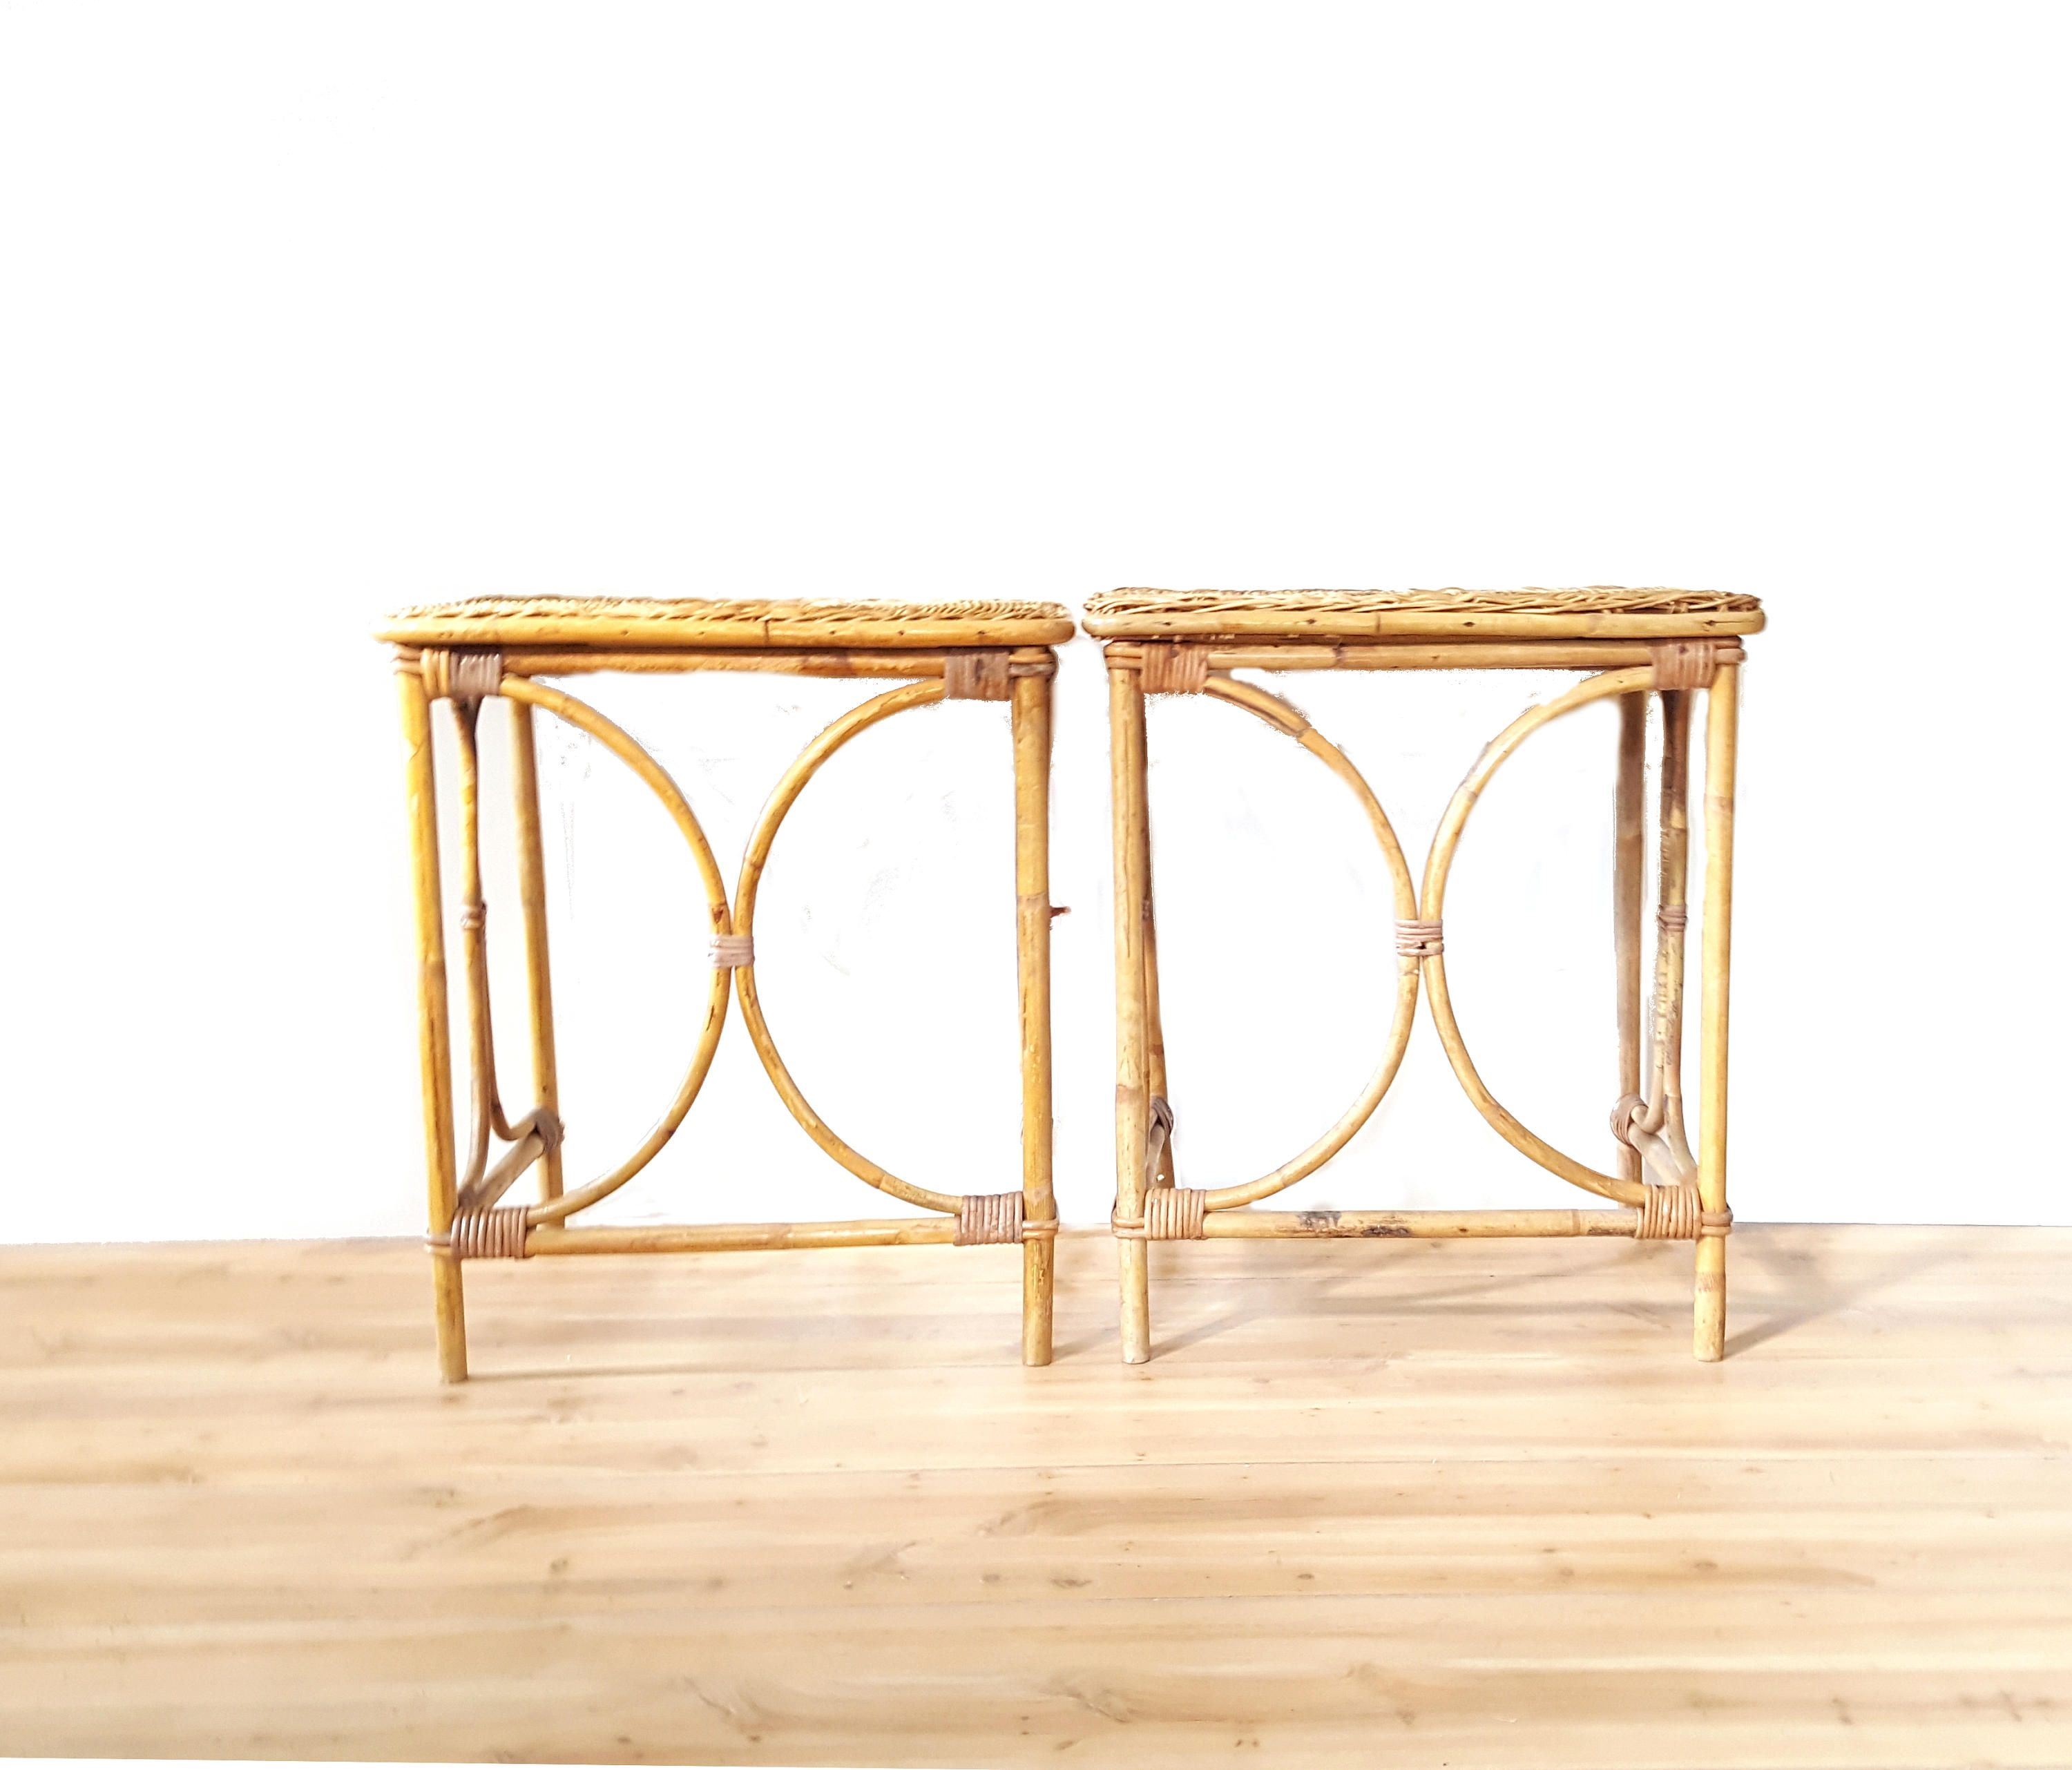 Bamboo Table With Design: Boho Bentwood Rattan Woven Side